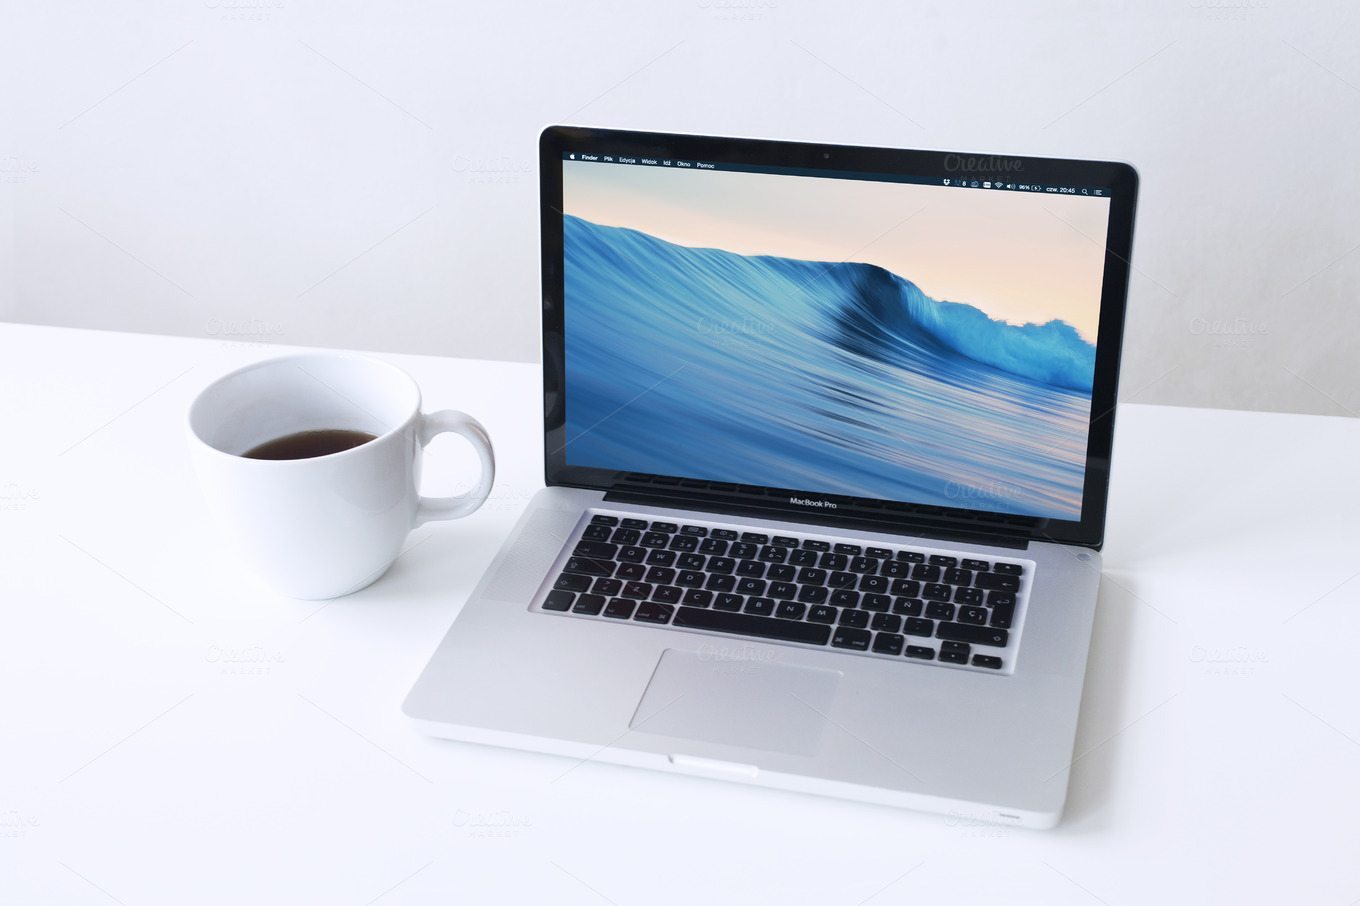 Fotoshop free download for macbook